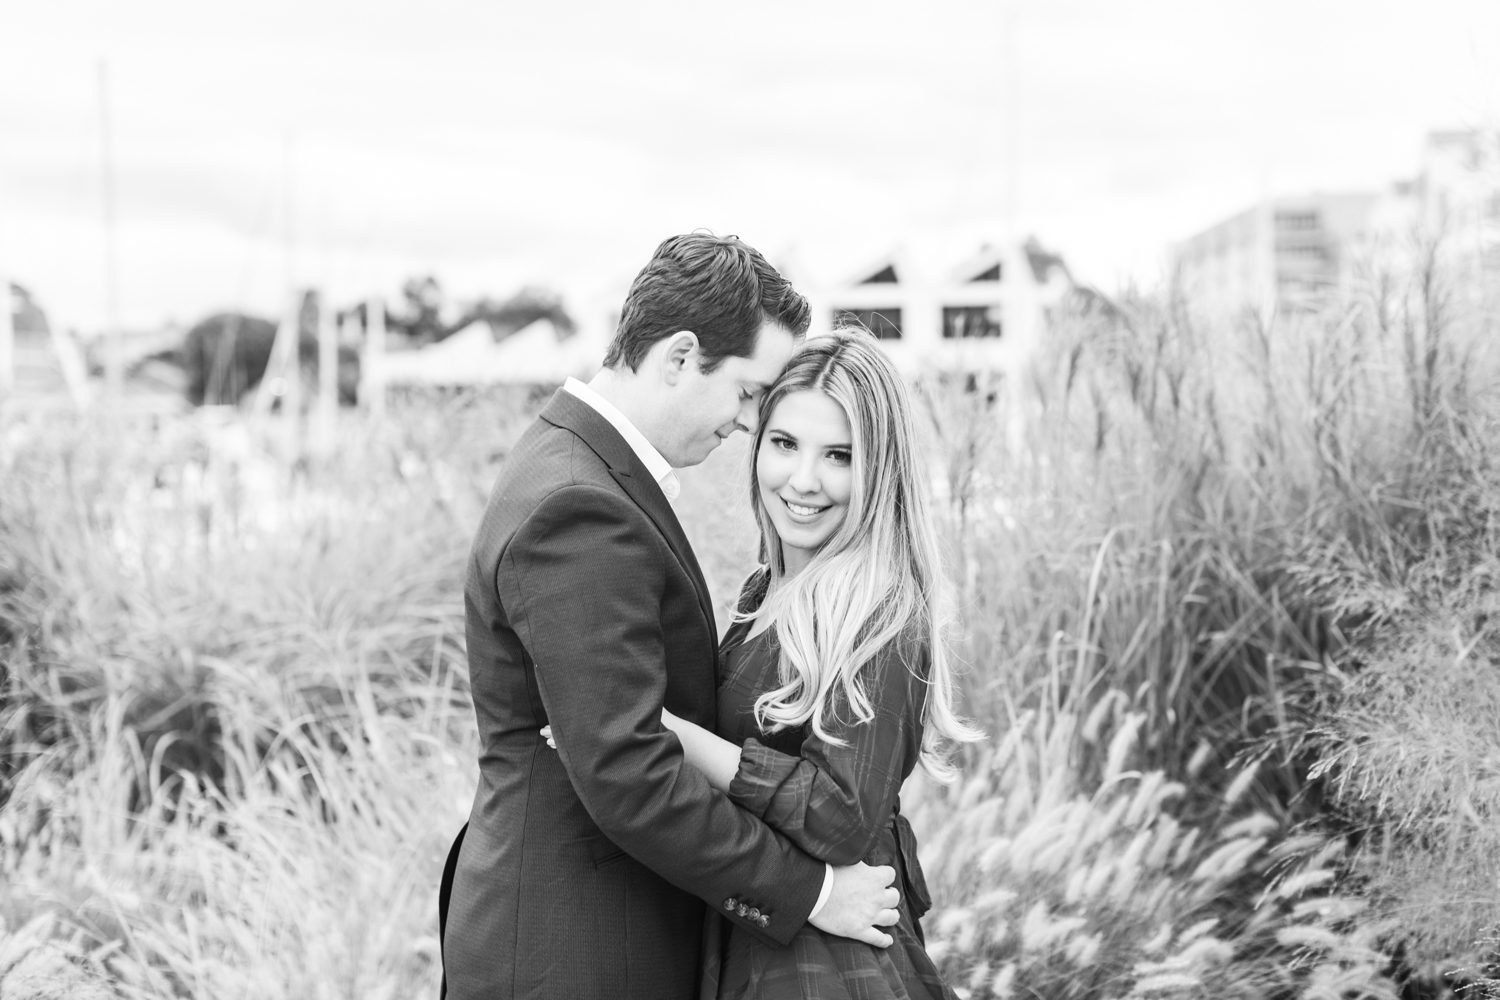 harbor-point-engagement-session-stamford-connecticut-wedding-photographer-rebecca-fred-shaina-lee-photography-photo-10.jpg